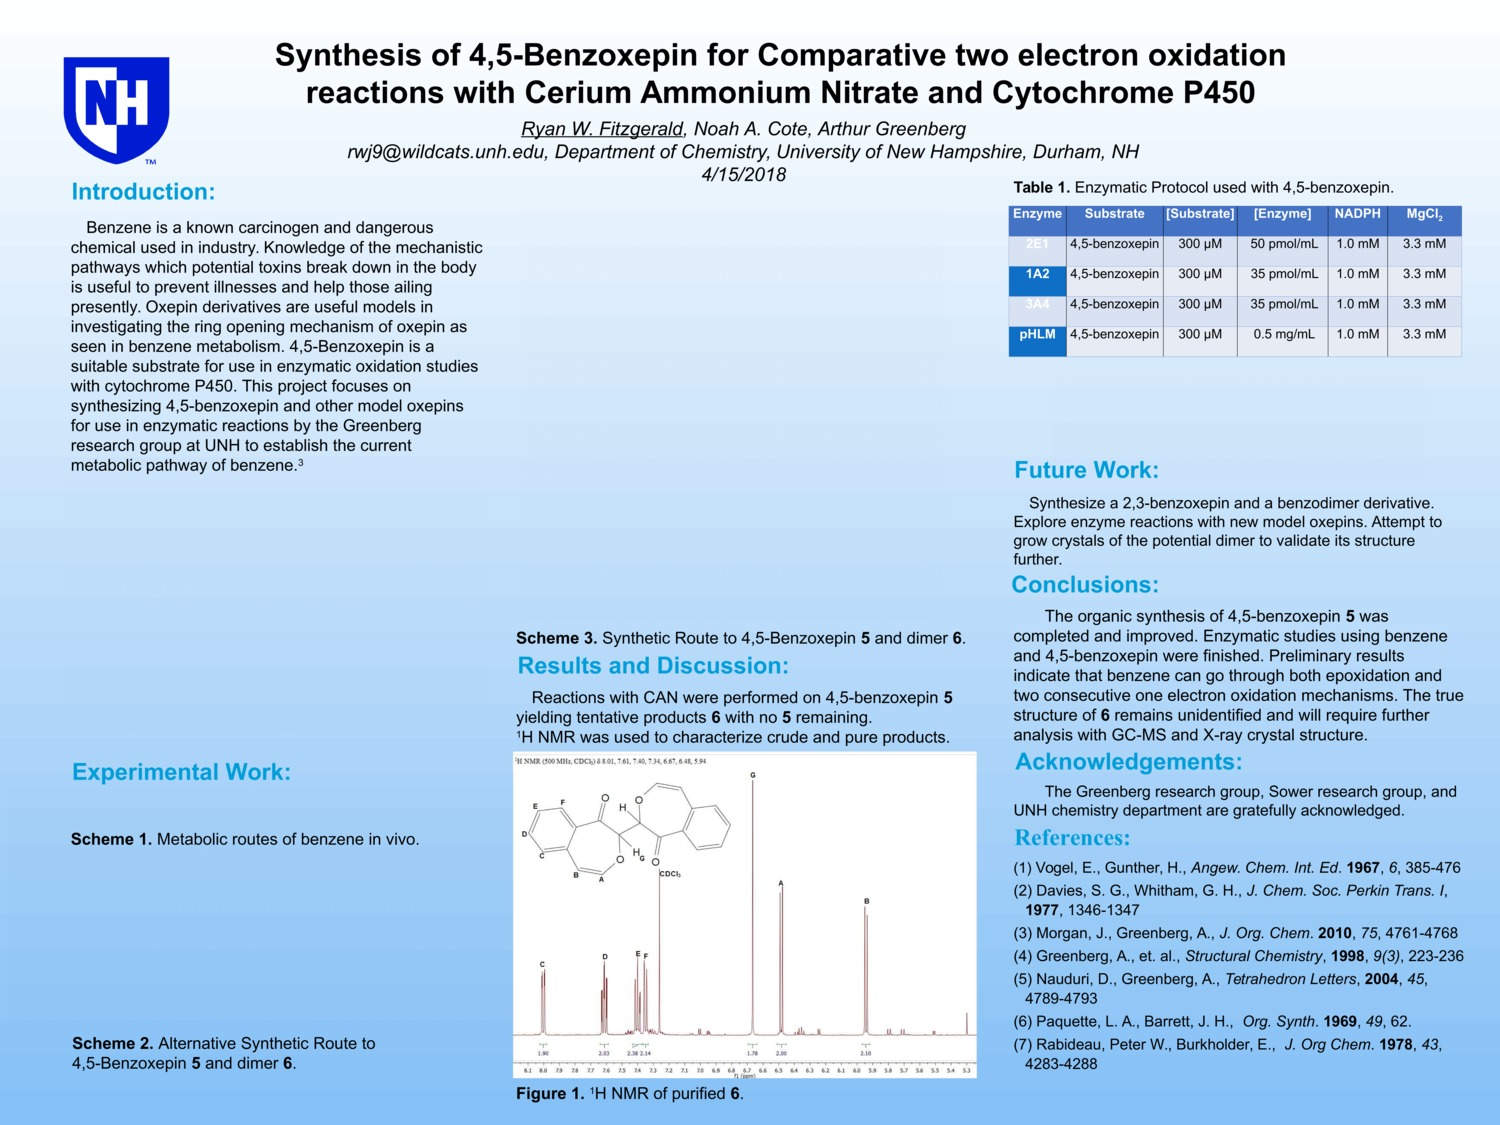 Synthesis Of 4,5-Benzoxepin For Comparative Two Electron Oxidation Reactions With Cerium Ammonium Nitrate And Cytochrome P450 by rwj9